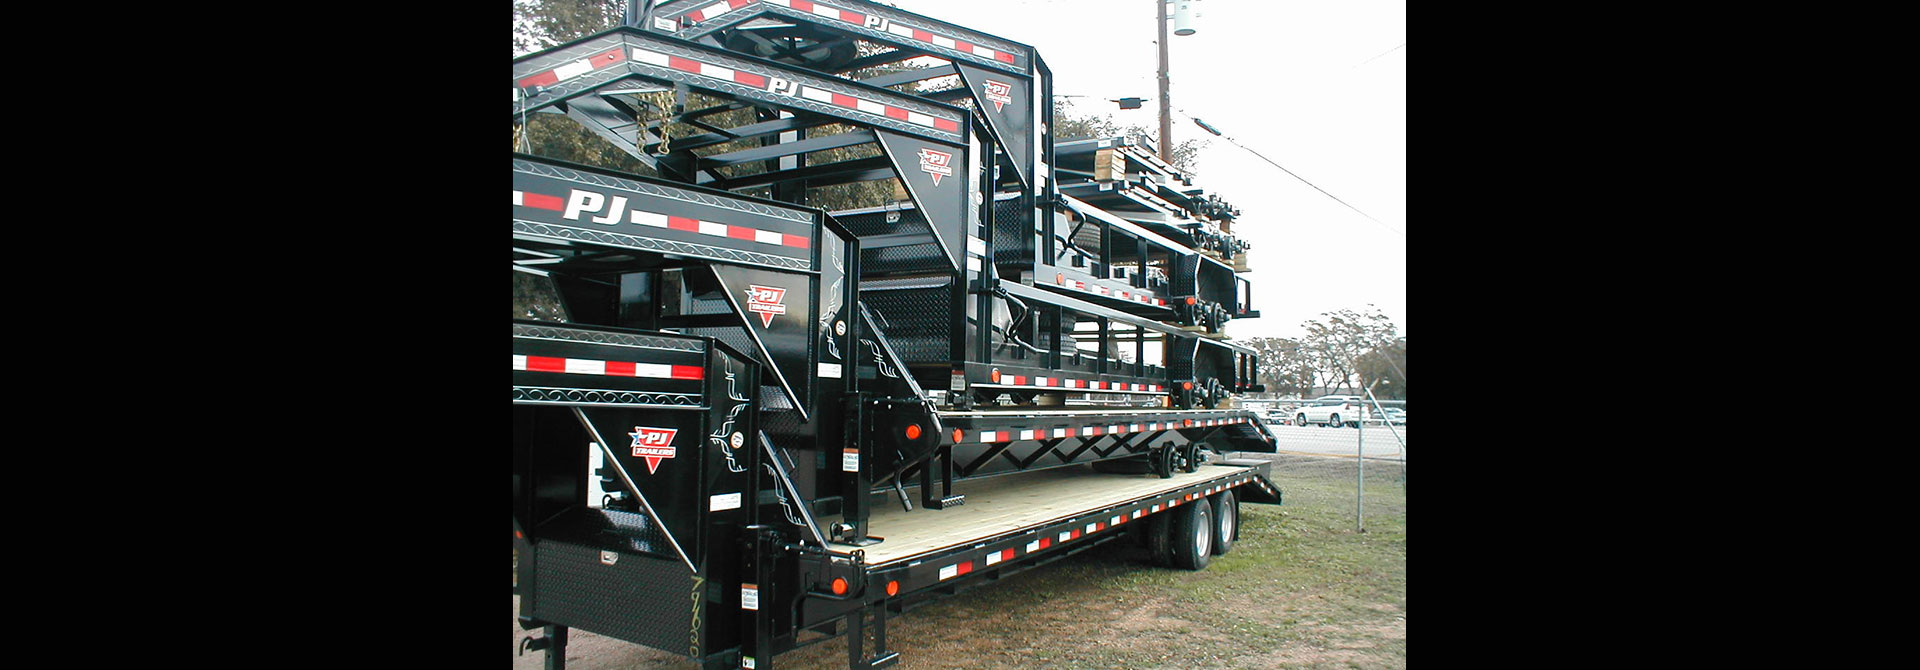 Home | Magnum Trailers, Performance, PJ, Wells Cargo, Top